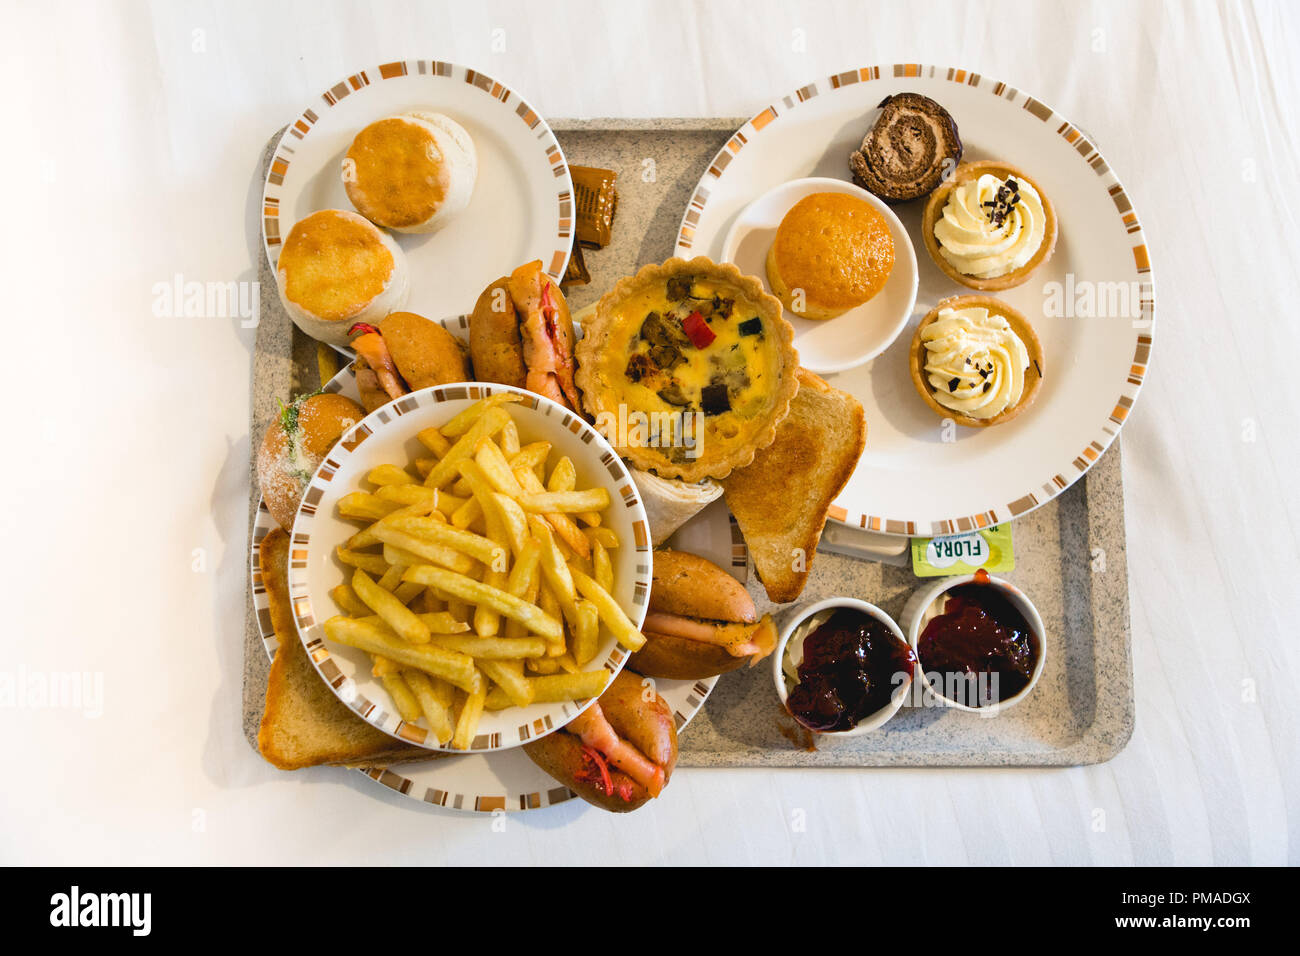 Tray full of sweet and savoury food including plates of sandwiches, rolls, cakes, pastries, scones & French fries (chips) for afternoon tea, on a bed Stock Photo